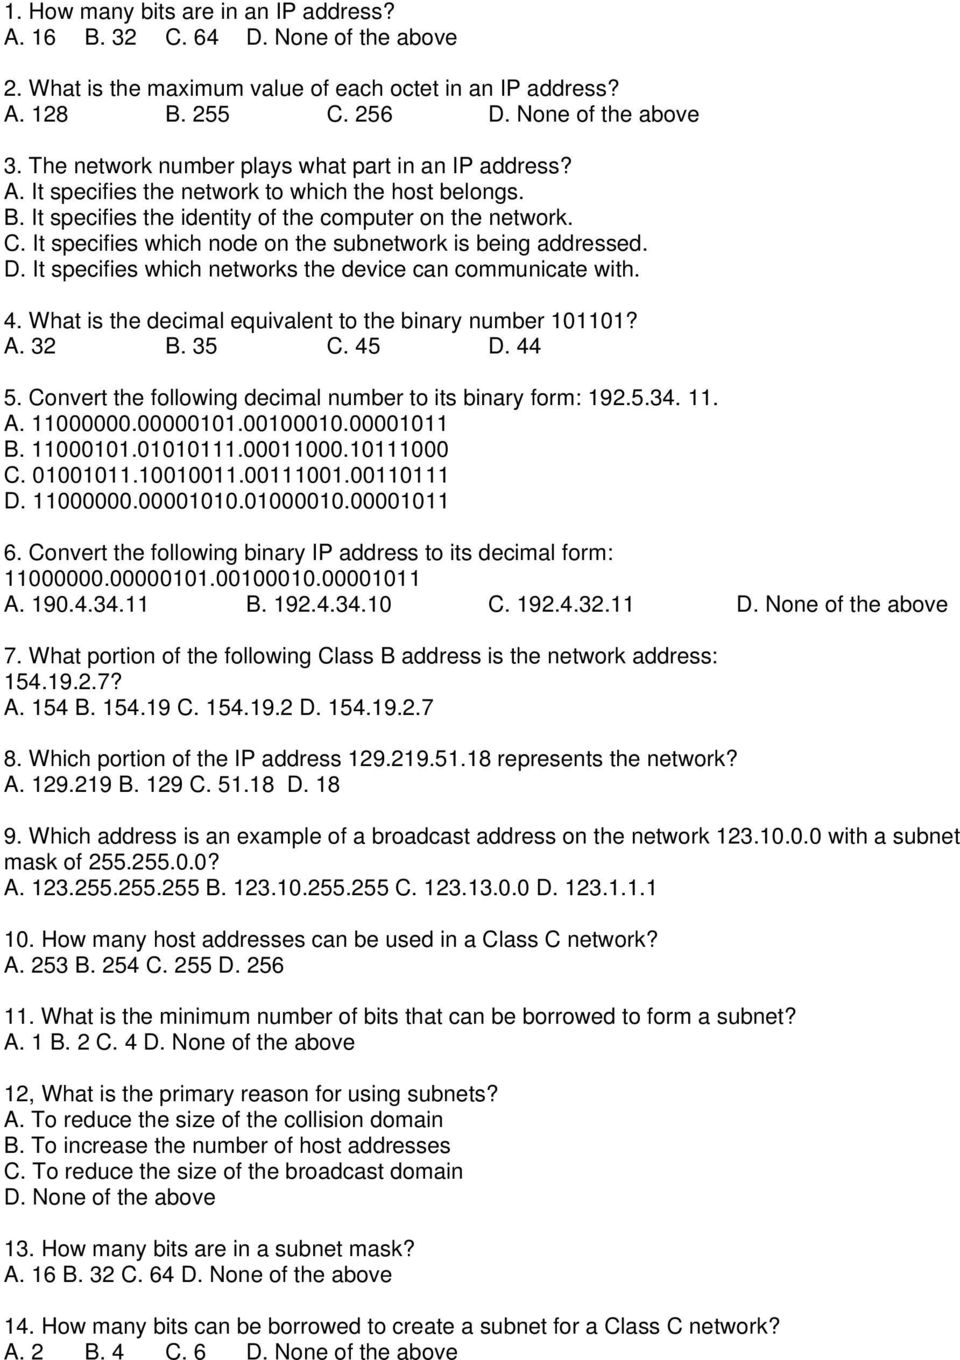 2  What is the maximum value of each octet in an IP address